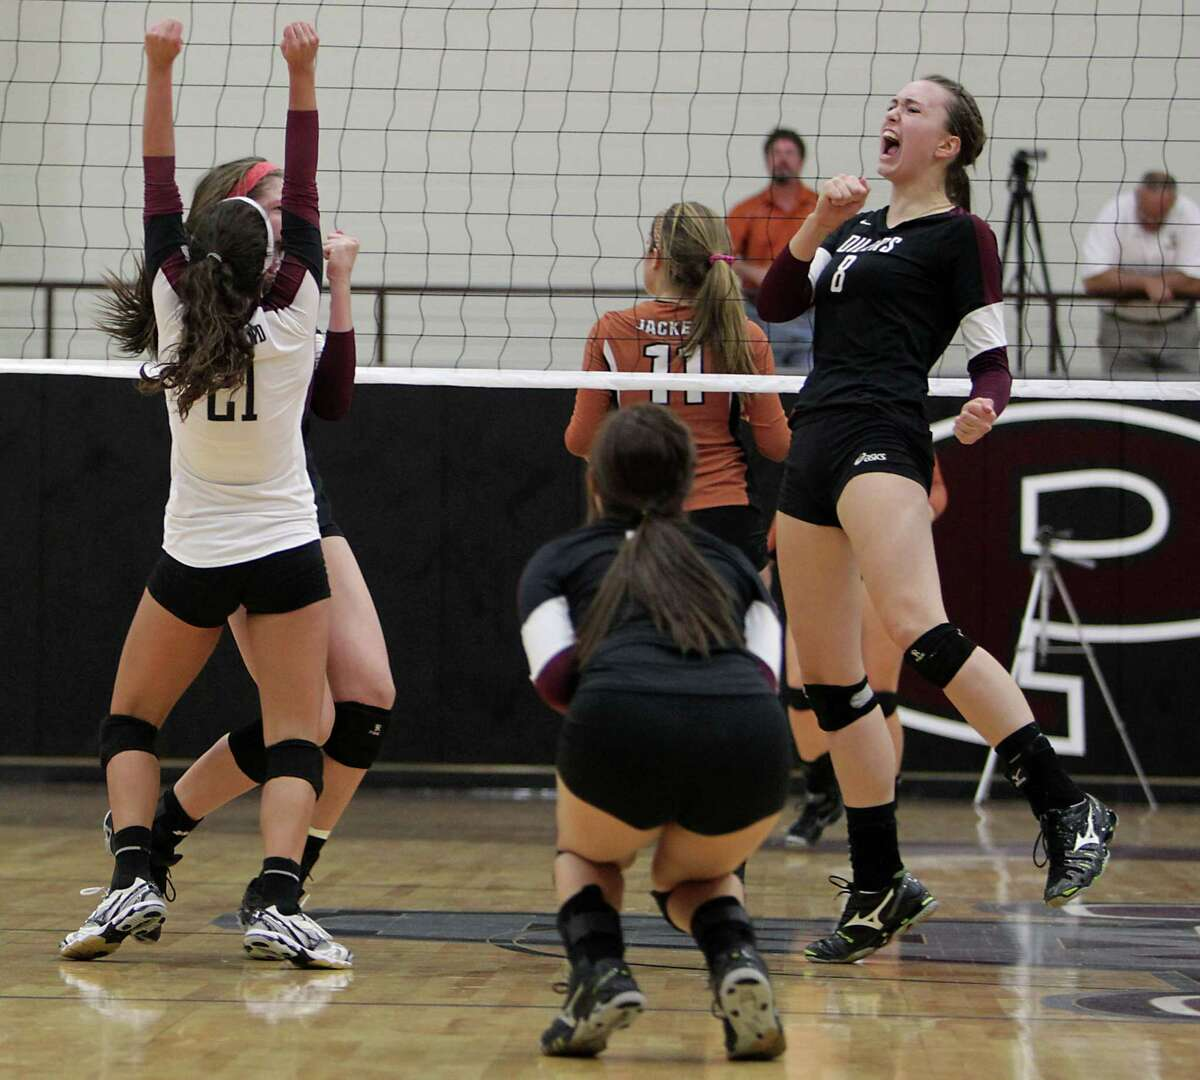 Pearland's Cassidy Nussman right, cheers after Pearland scored a point against Alvin during high school volleyball game action at Pearland High School Tuesday, Oct. 15, 2013, in Pearland.